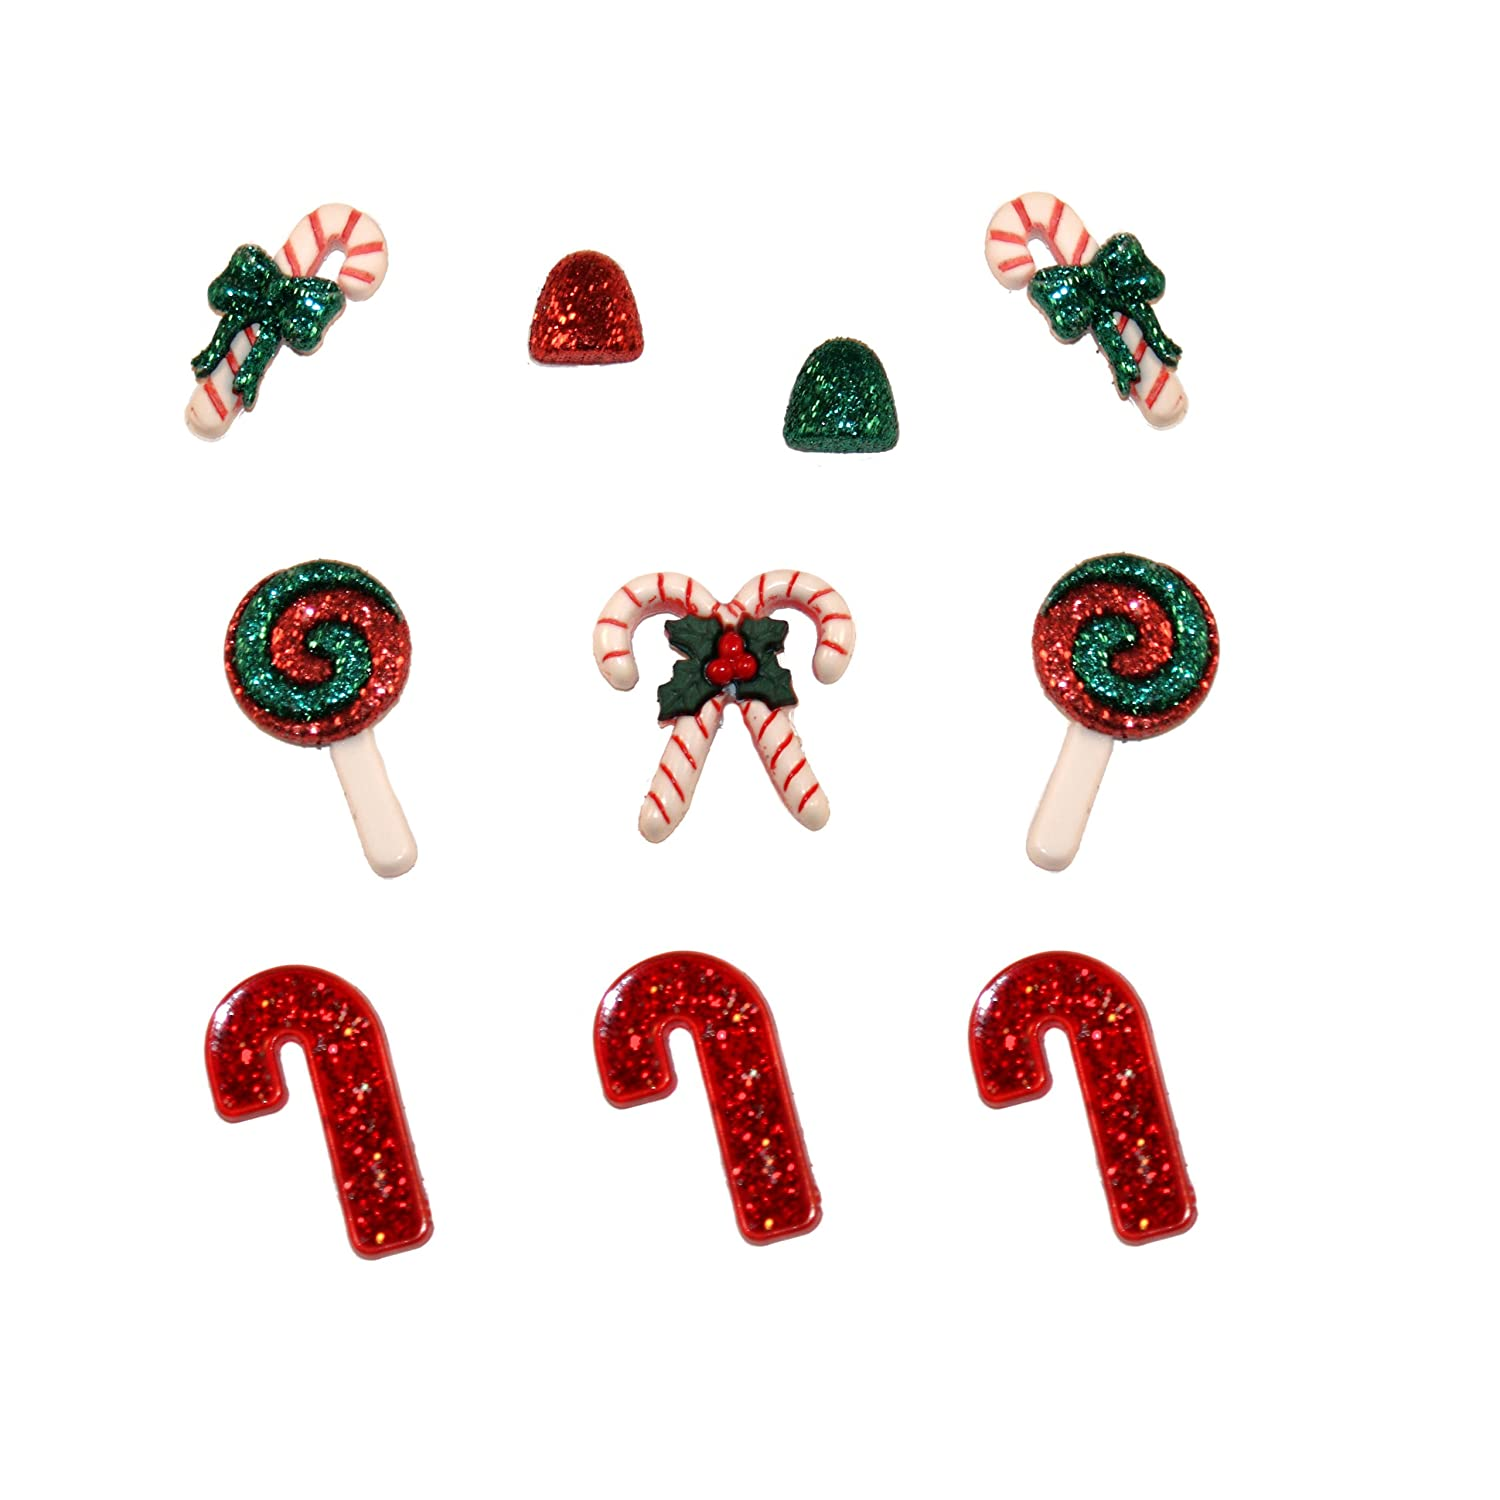 Jesse James DIUHOL-2466 Dress it Up Holiday Collection Embellishments, Candy Striped Christmas